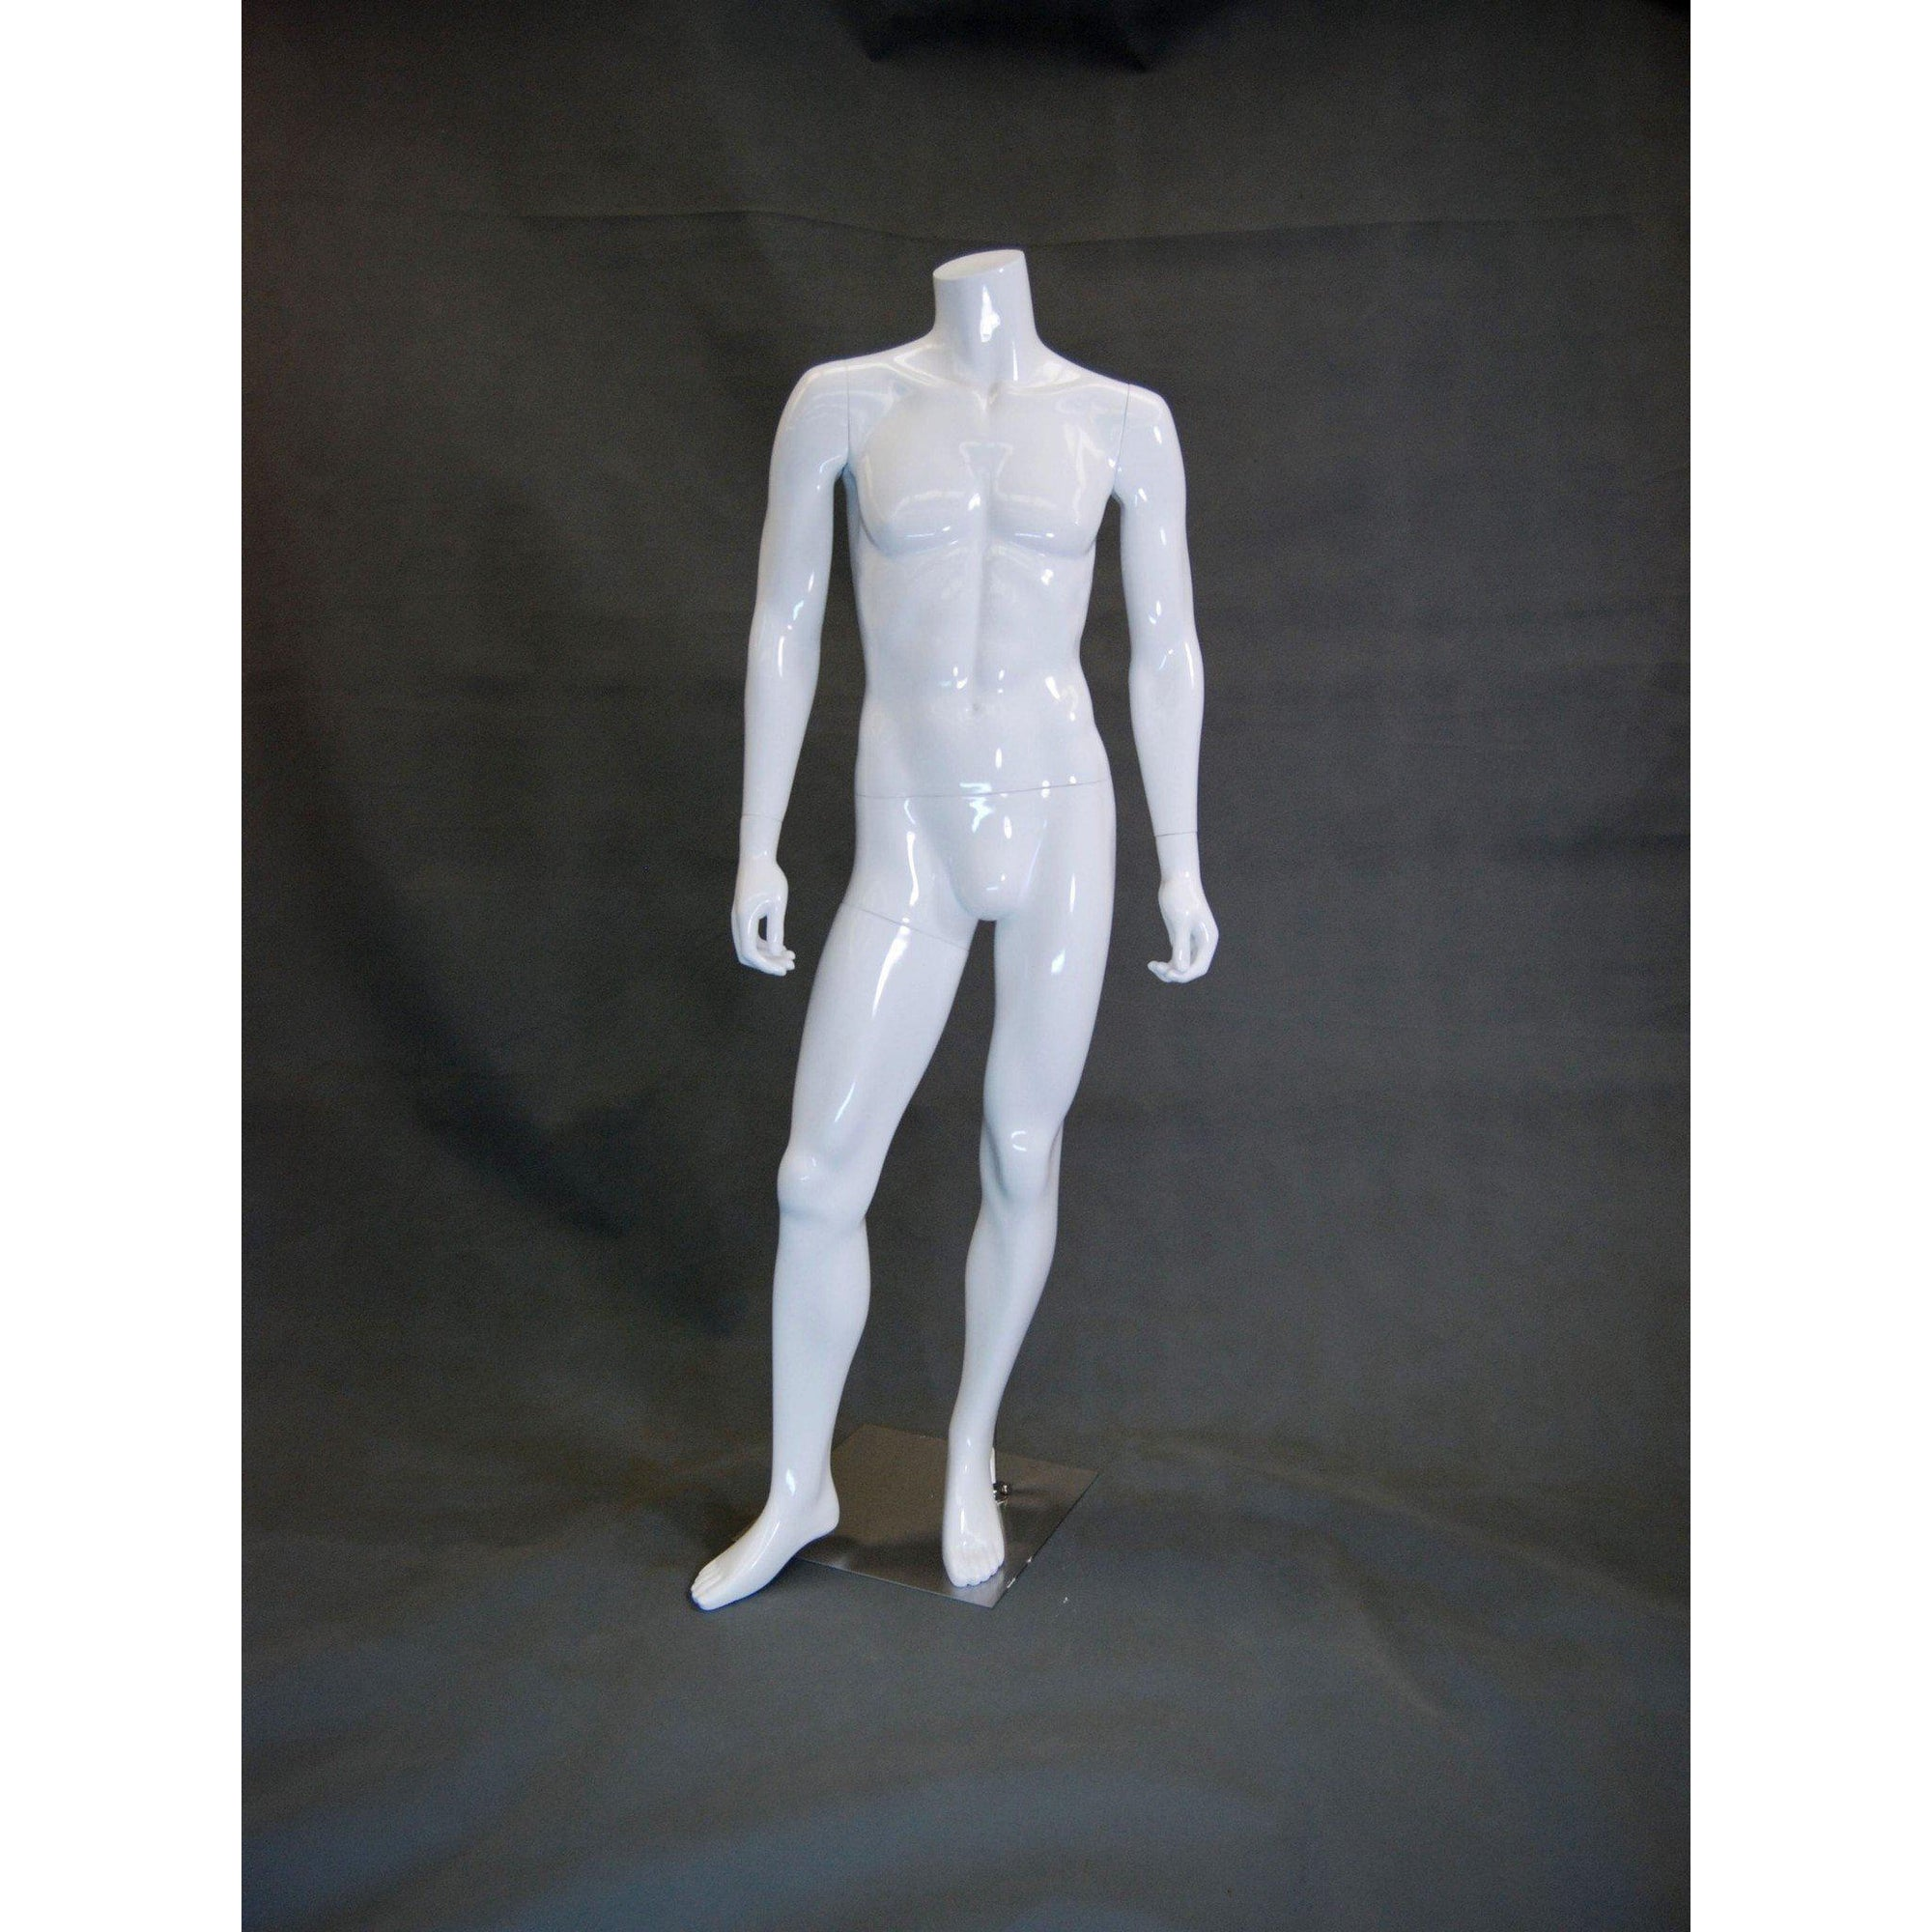 Mannequin Mall Male Headless Mannequin MM-MA2BW1 For Fashion Stores and Retail Shops